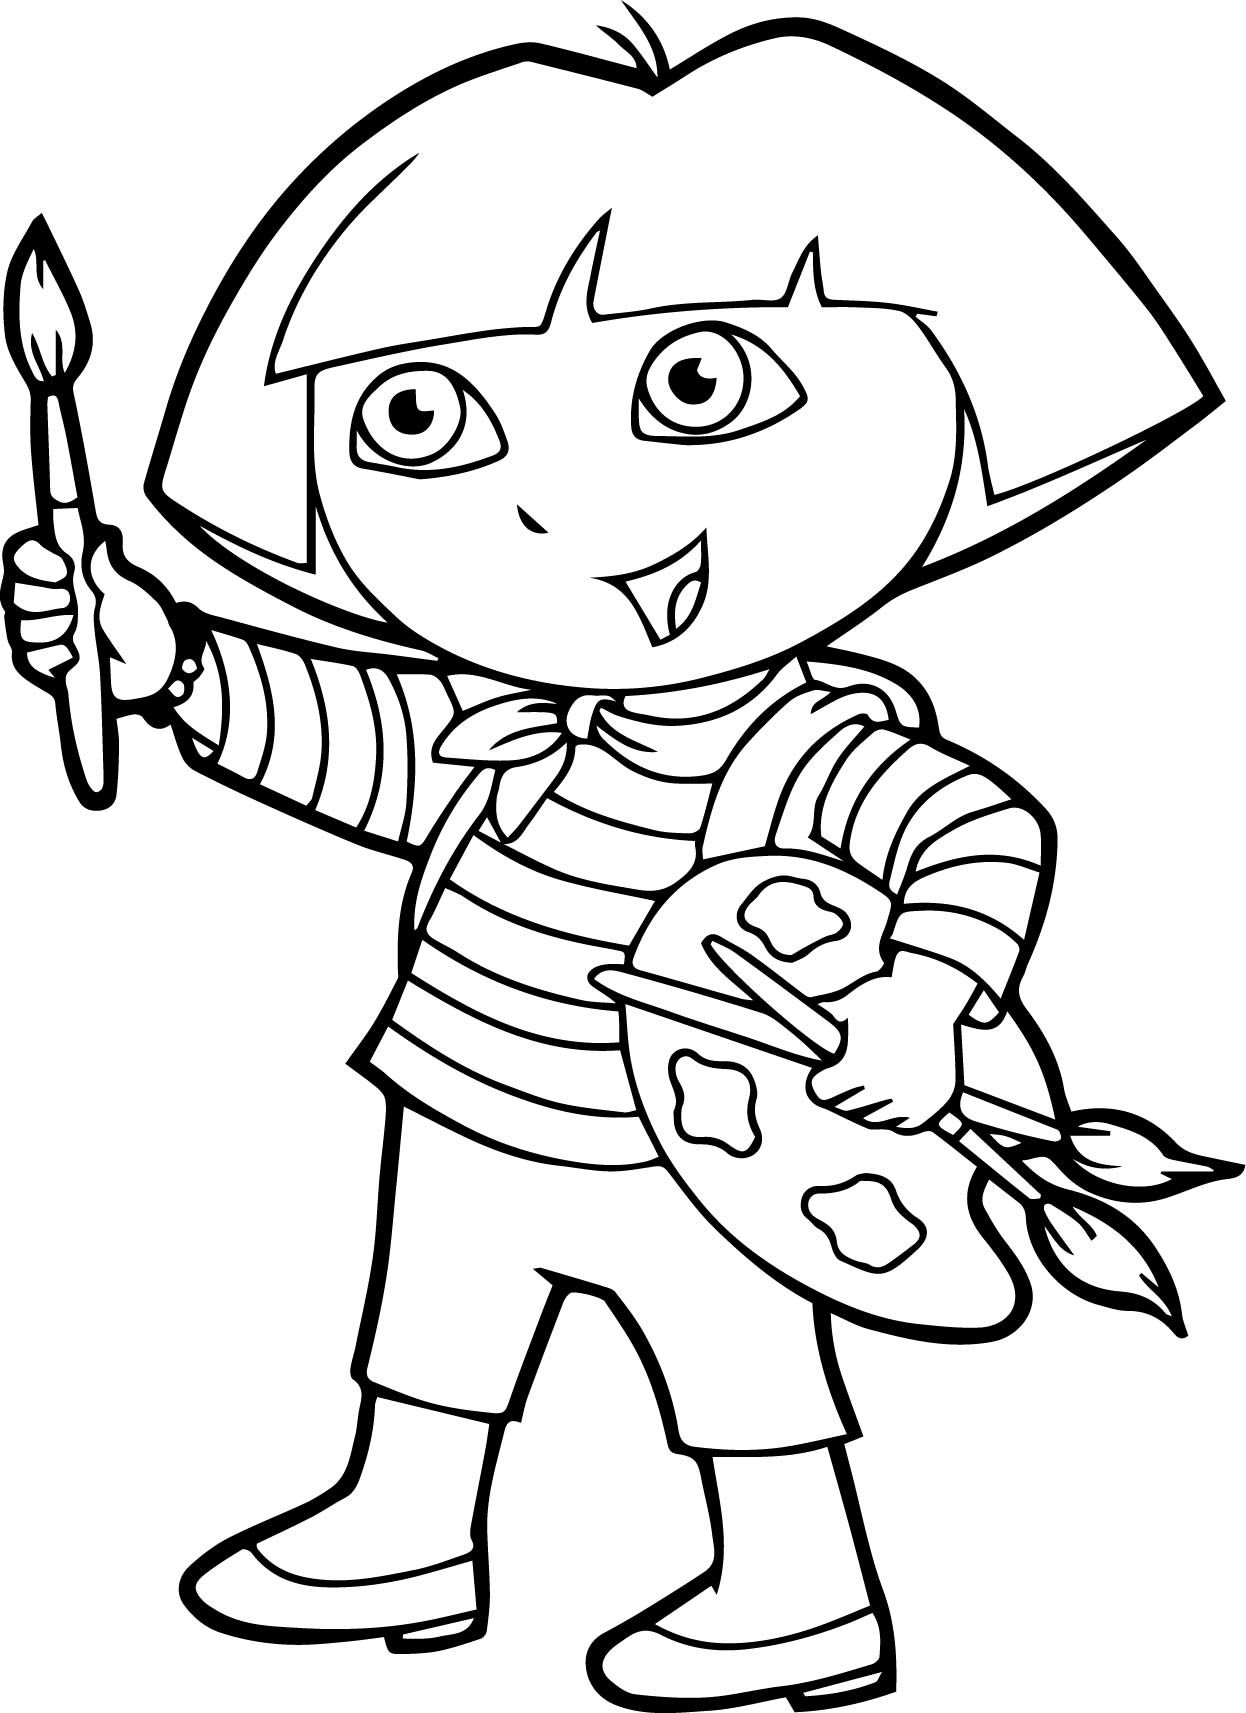 dora painting pictures dora and friends drawing at paintingvalleycom explore dora painting pictures